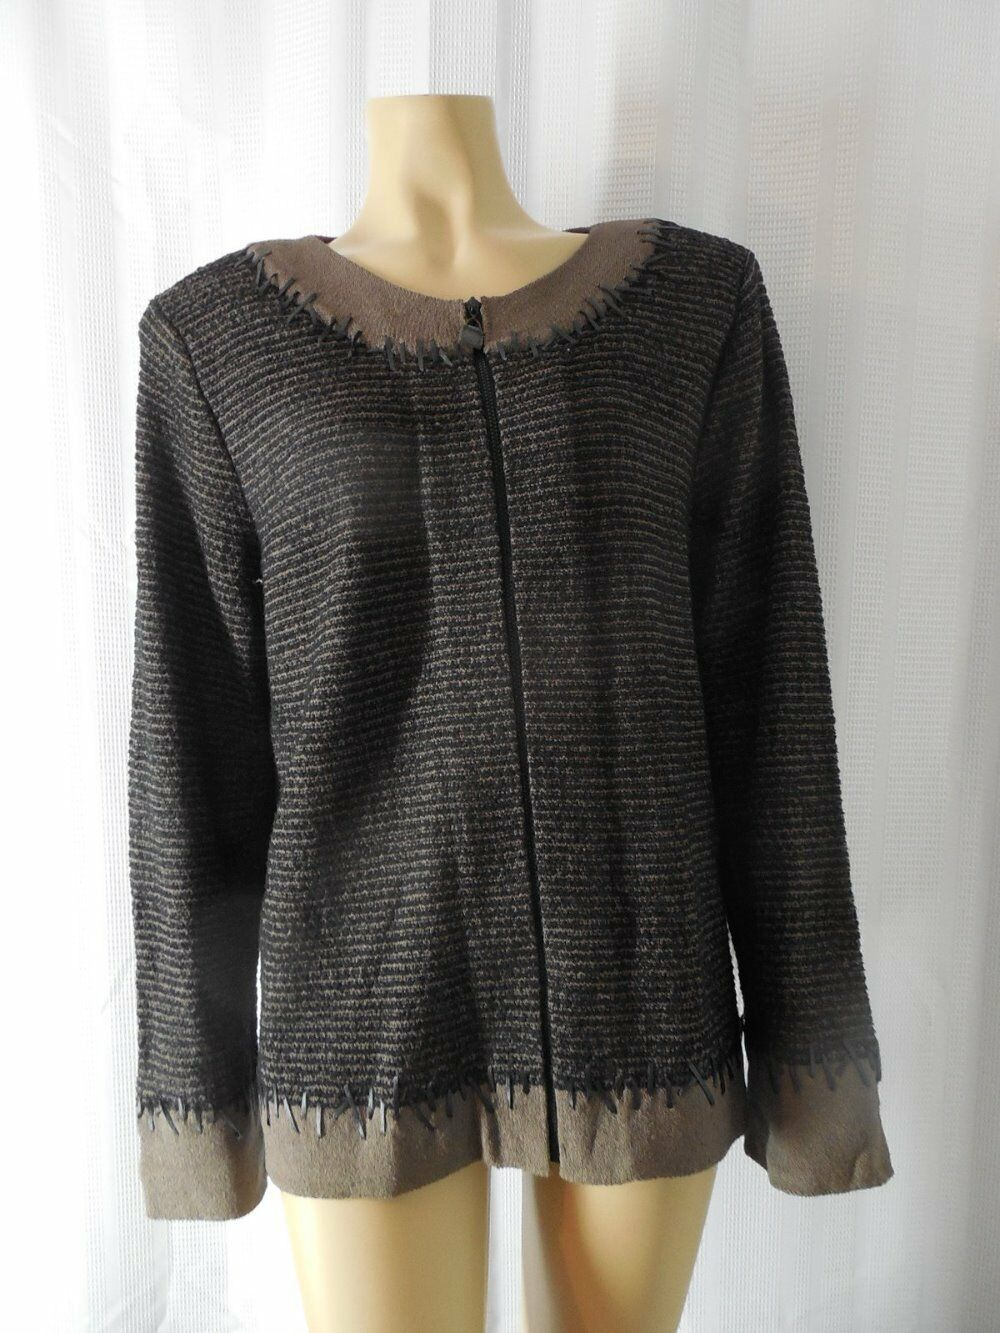 STEVE FABRIKANT Sweater Cardigan XLarge brown Wool blend Vintage